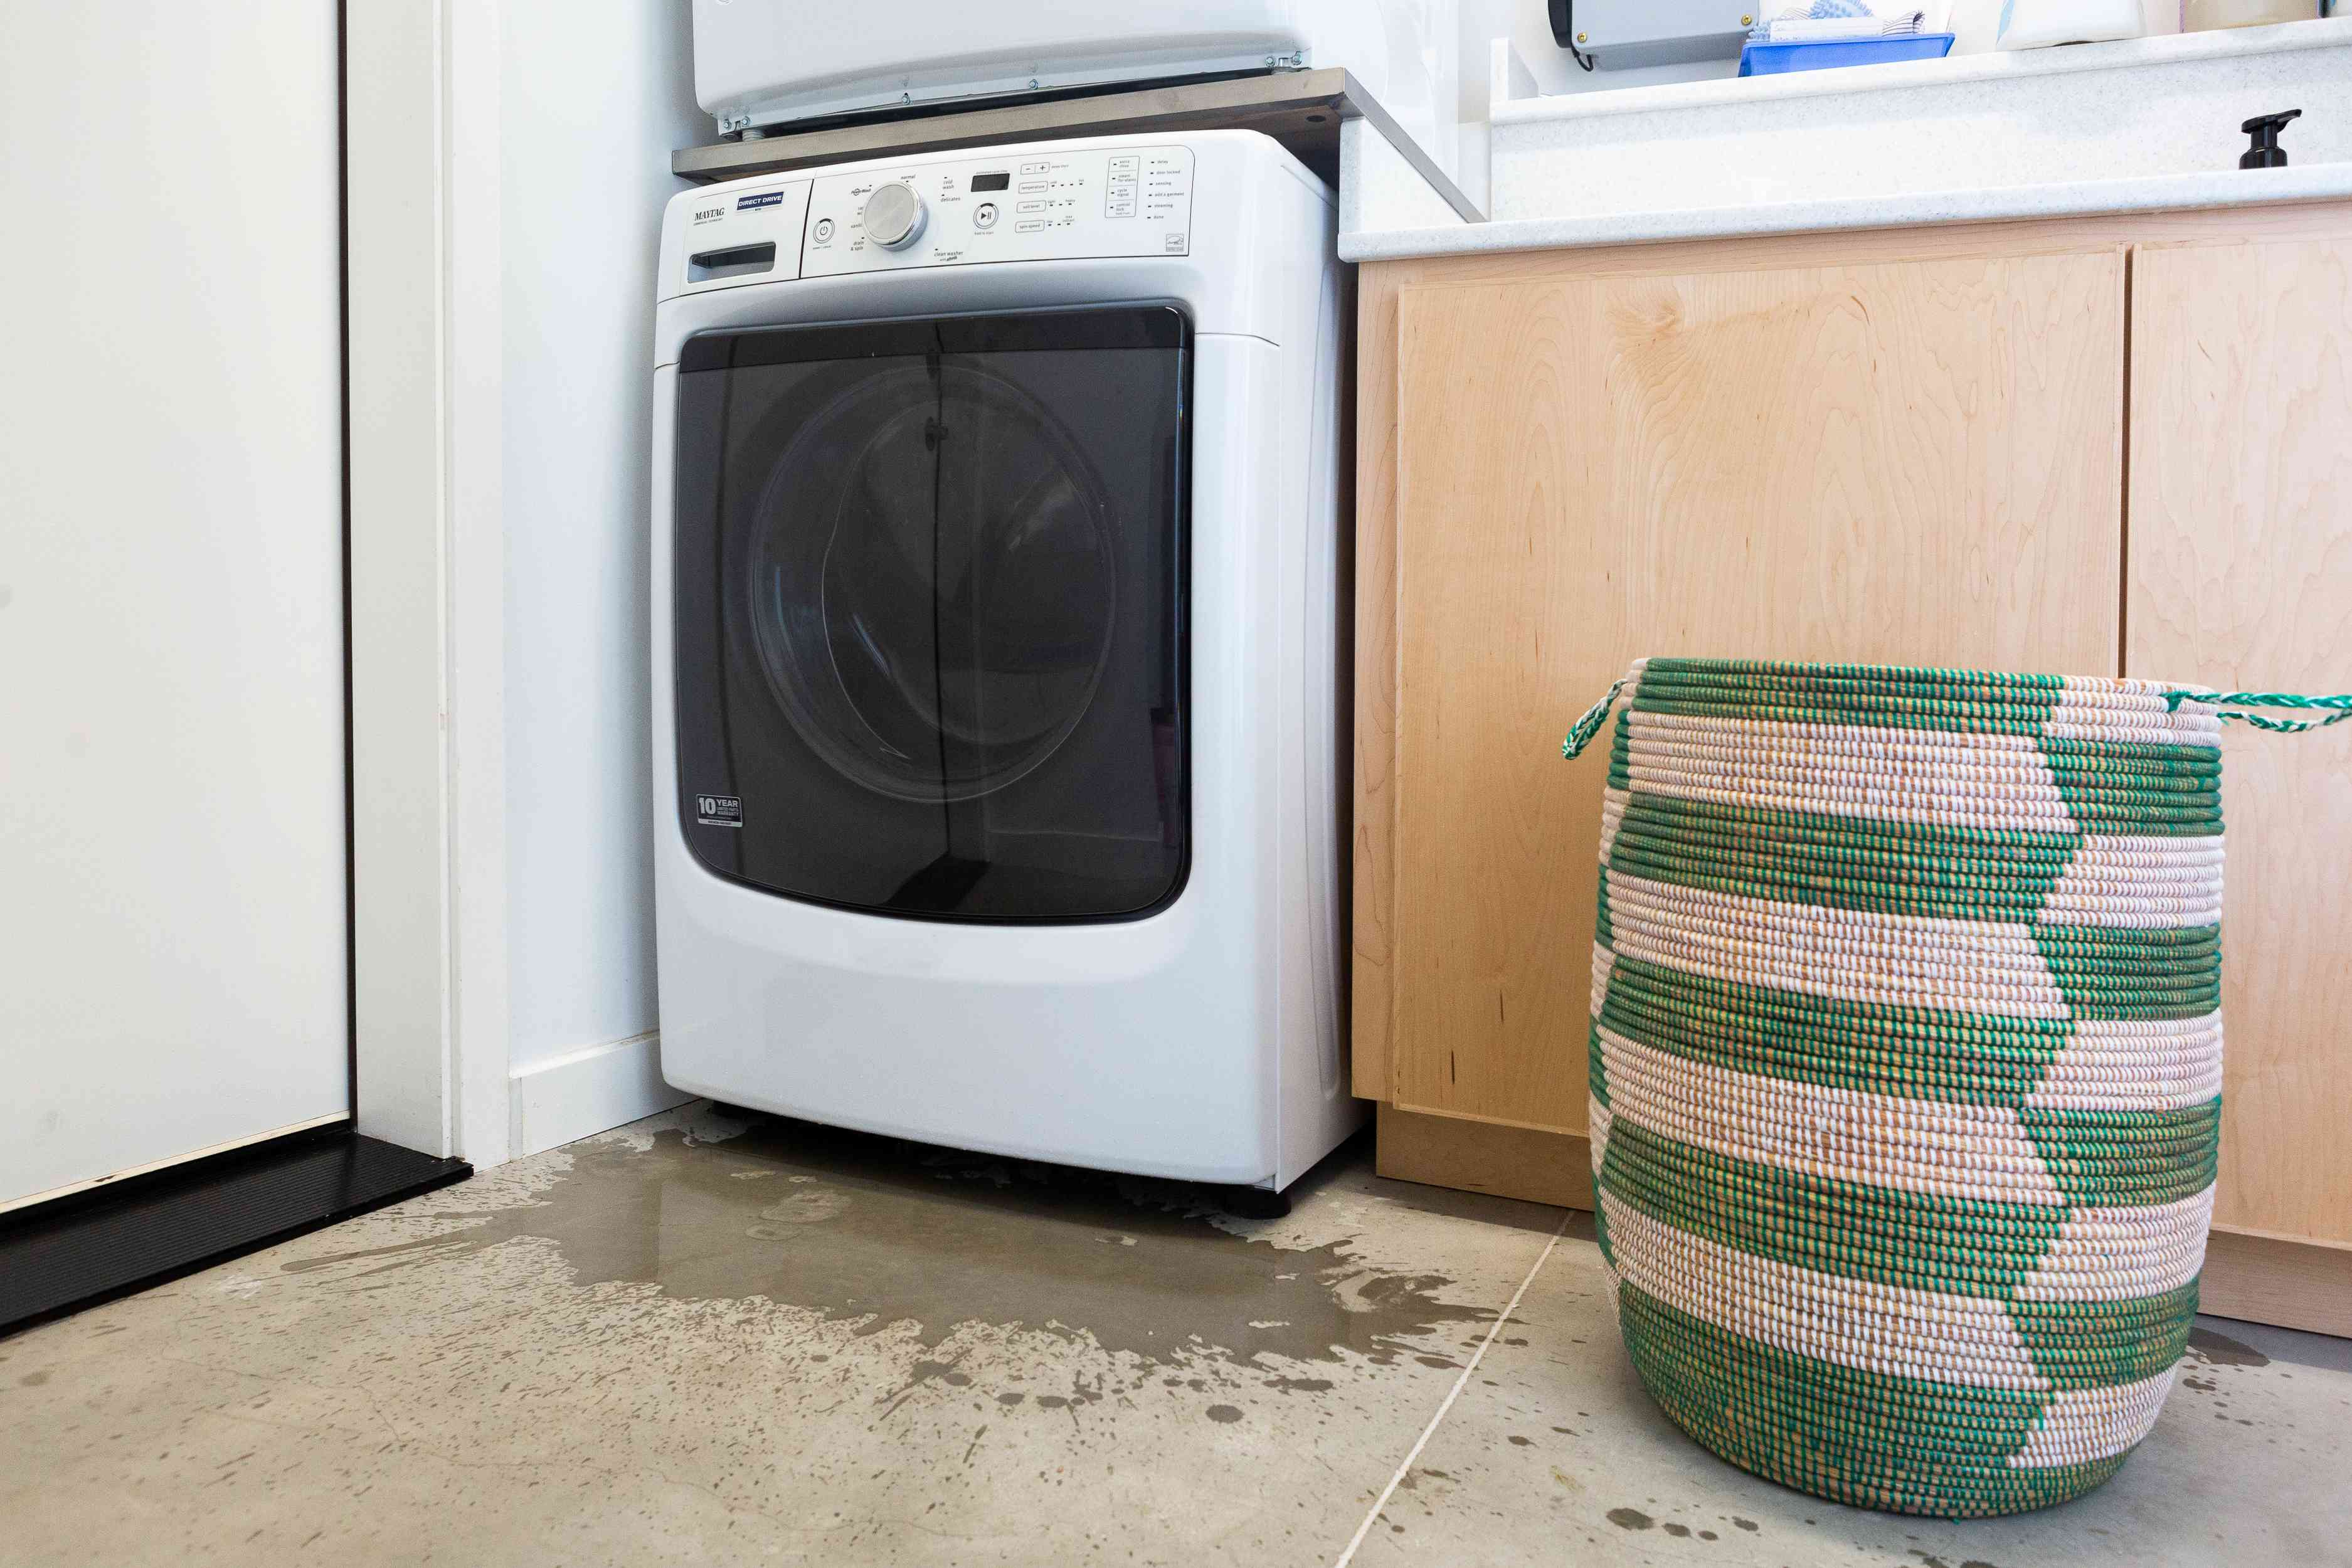 overflowing washer